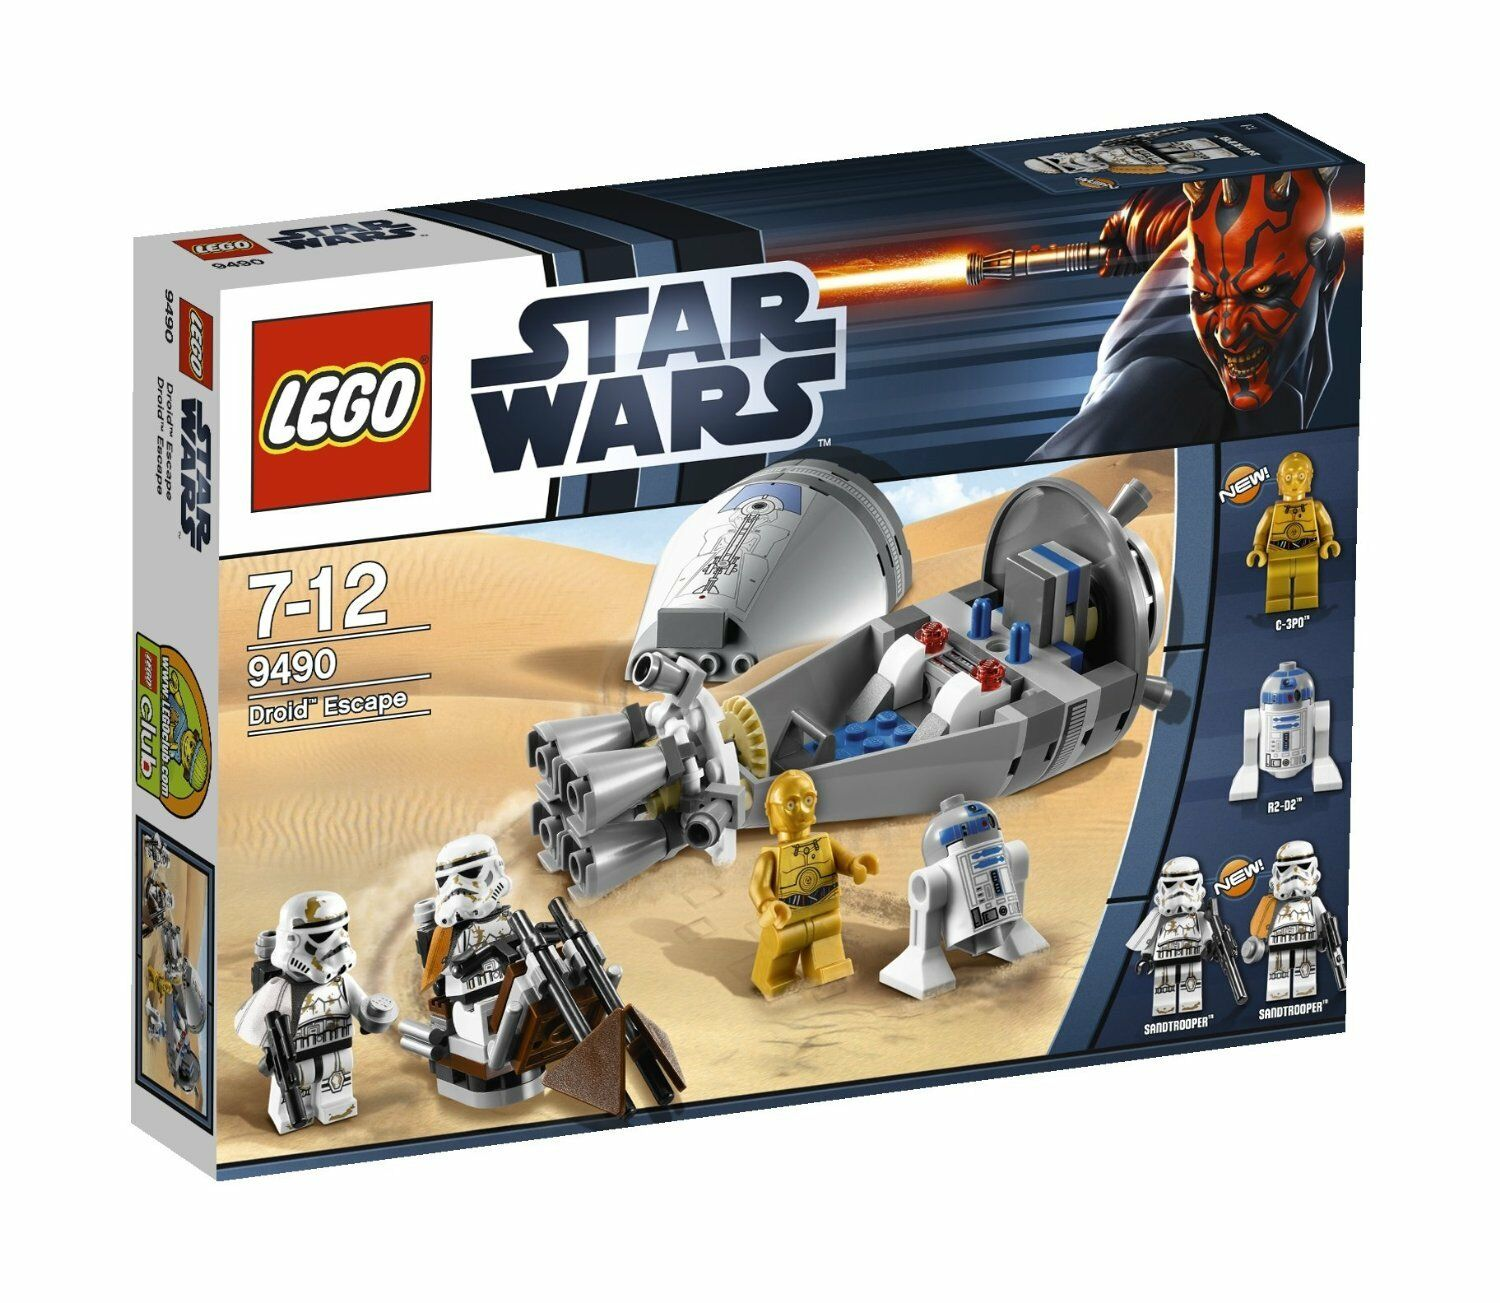 LEGO Star Wars 9490 Droid Escape R2-D2 C-3PO Sandtrooper Swoopbike